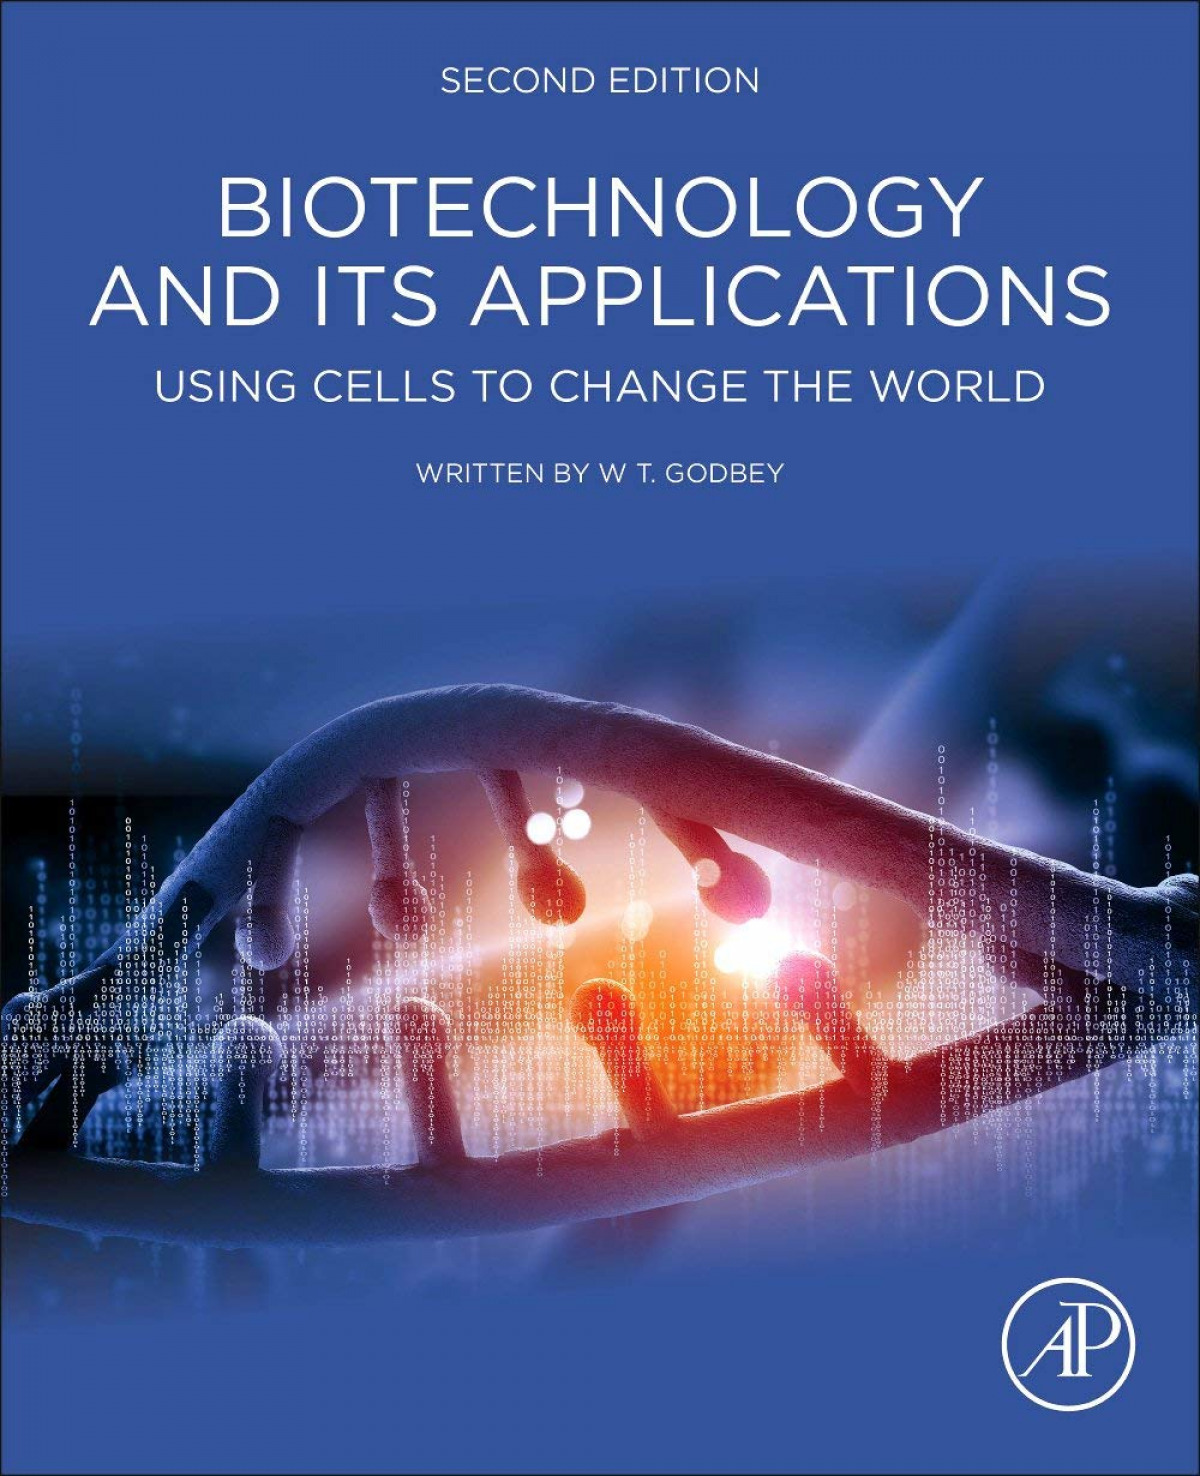 BIOTECHNOLOGY AND ITS APPLICATIONS 2ND.EDITION